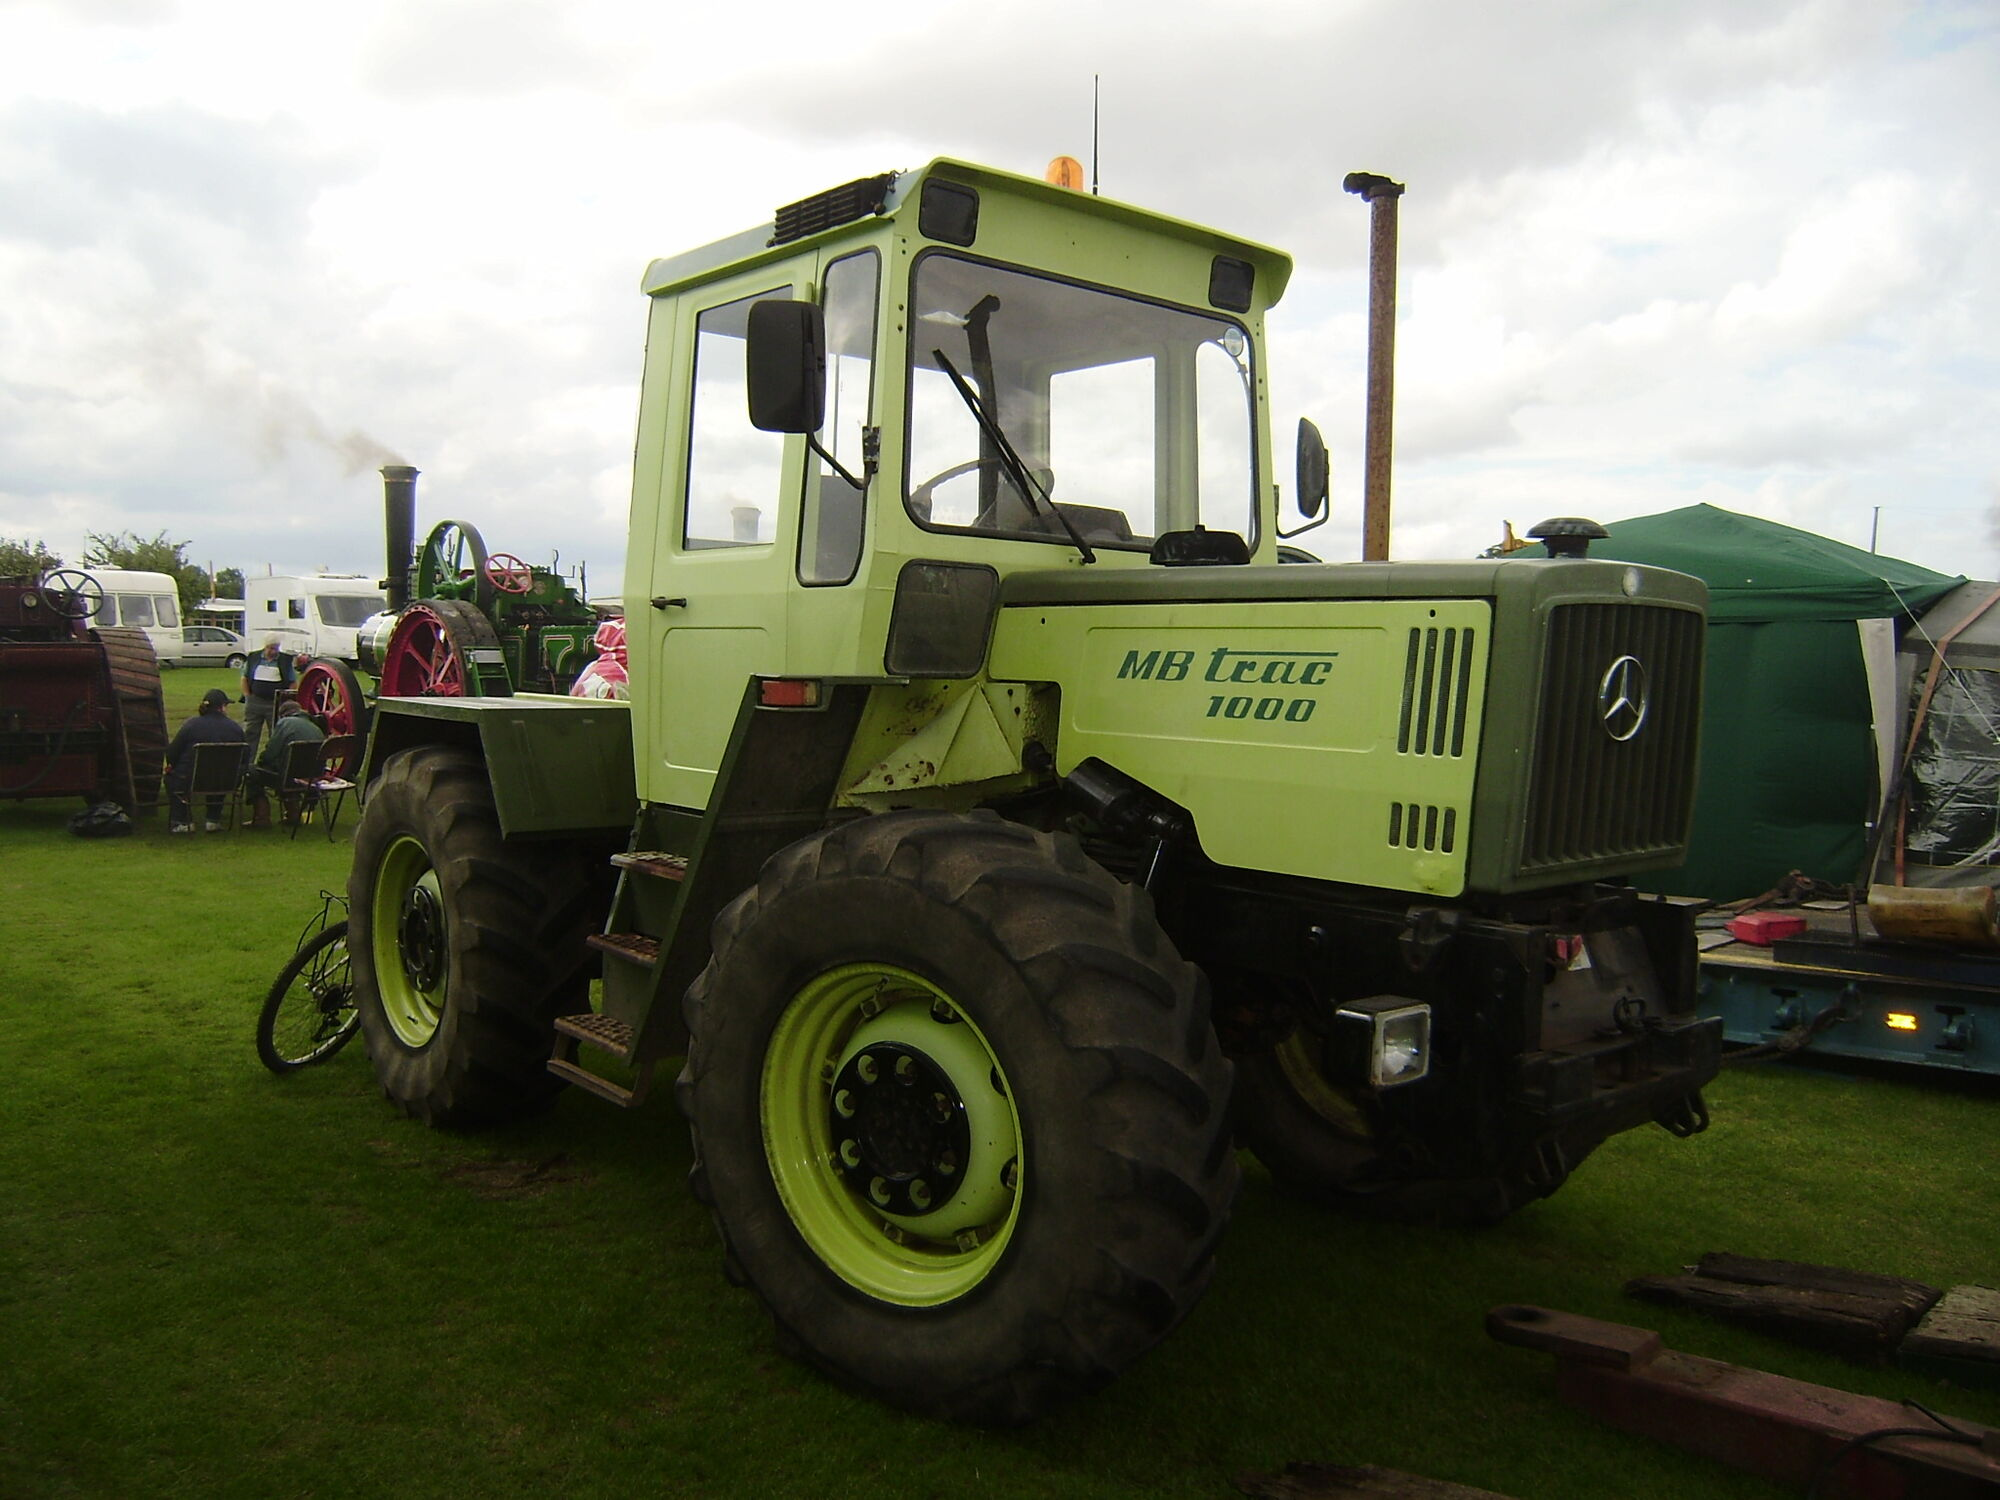 Etwas Neues genug MB Trac | Tractor & Construction Plant Wiki | FANDOM powered by Wikia &FT_49